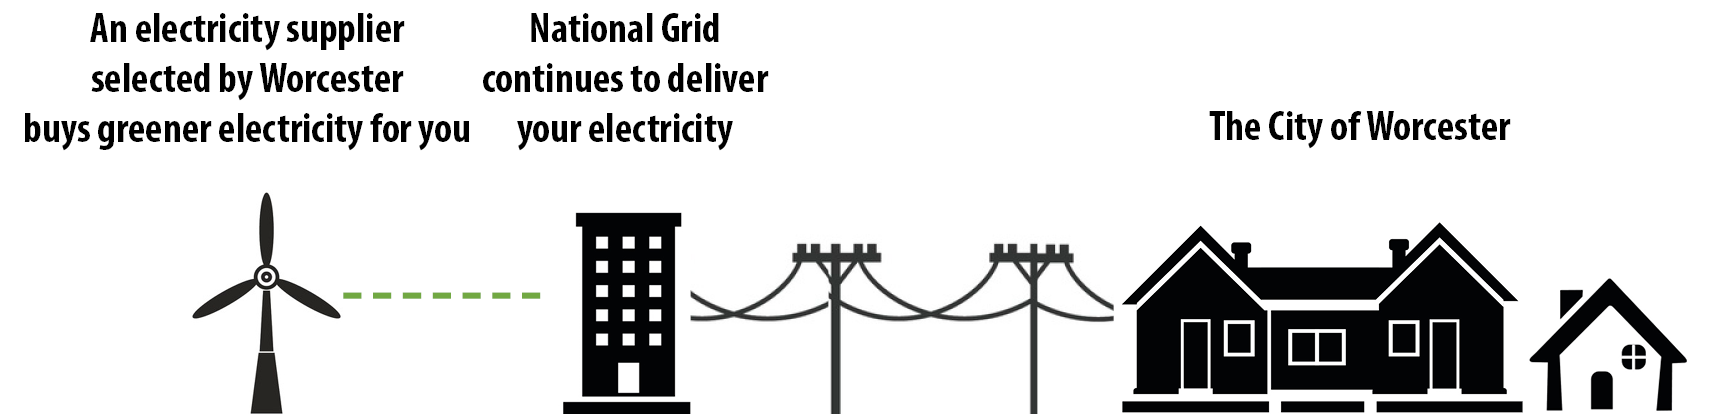 Diagram showing electricity supplier, utility, and the city of Worcester